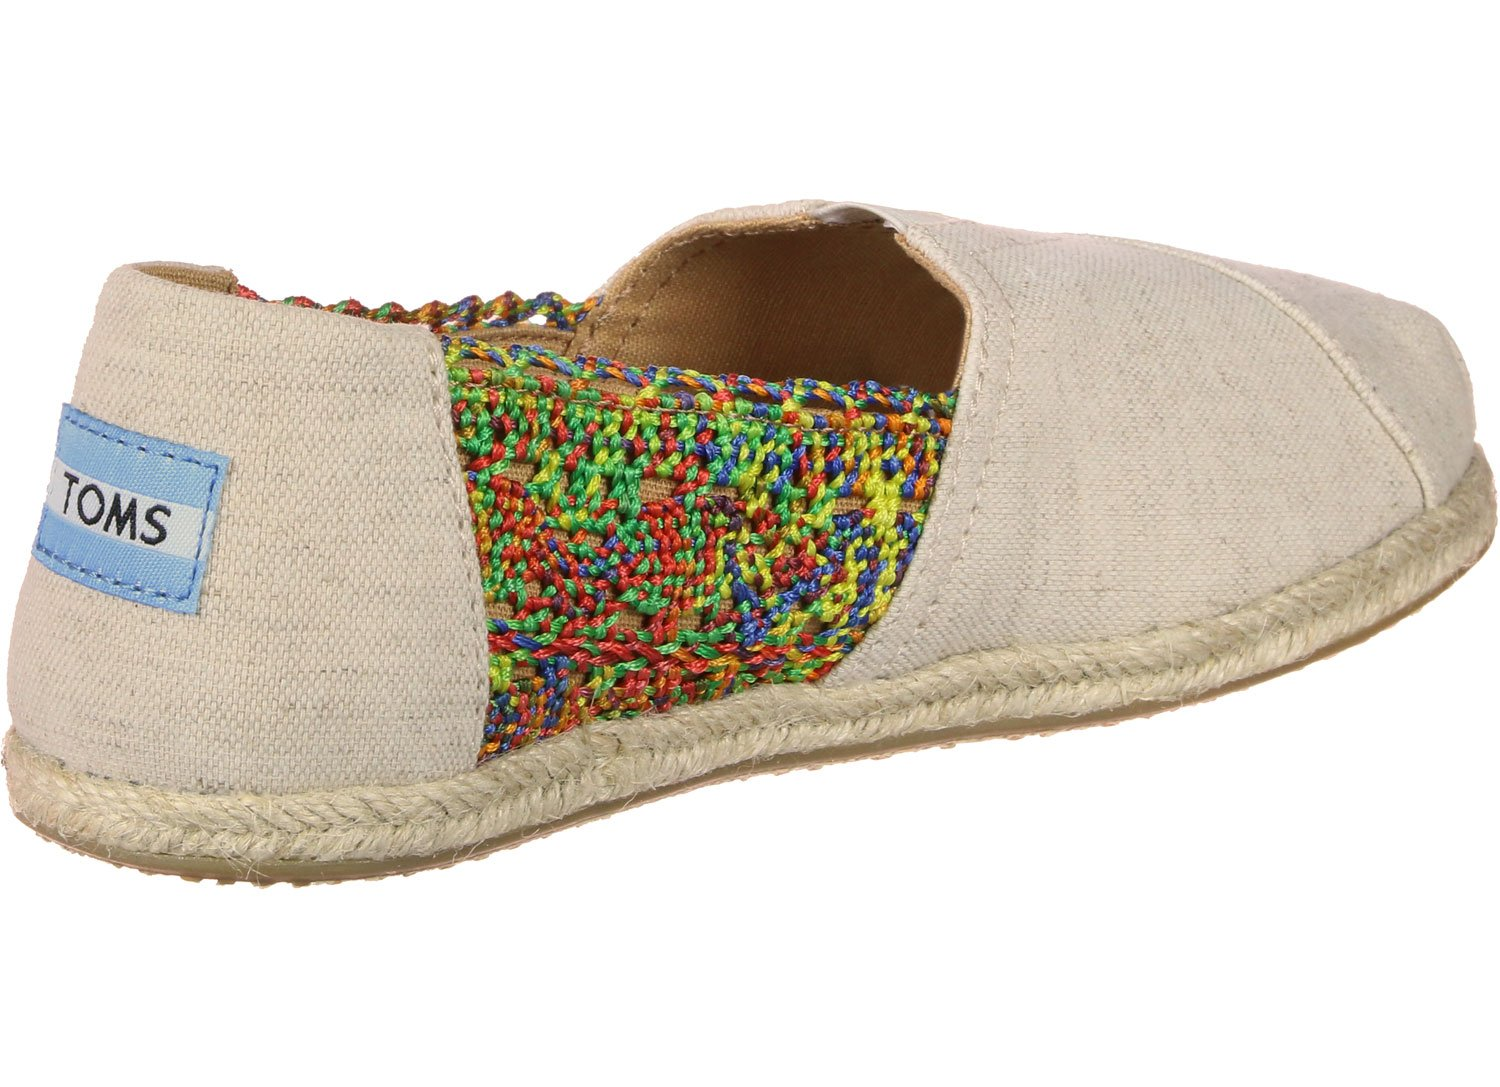 TOMS Canvas Seasonal Classics Alpargata, 19997 Zapatillas Crochet de ...